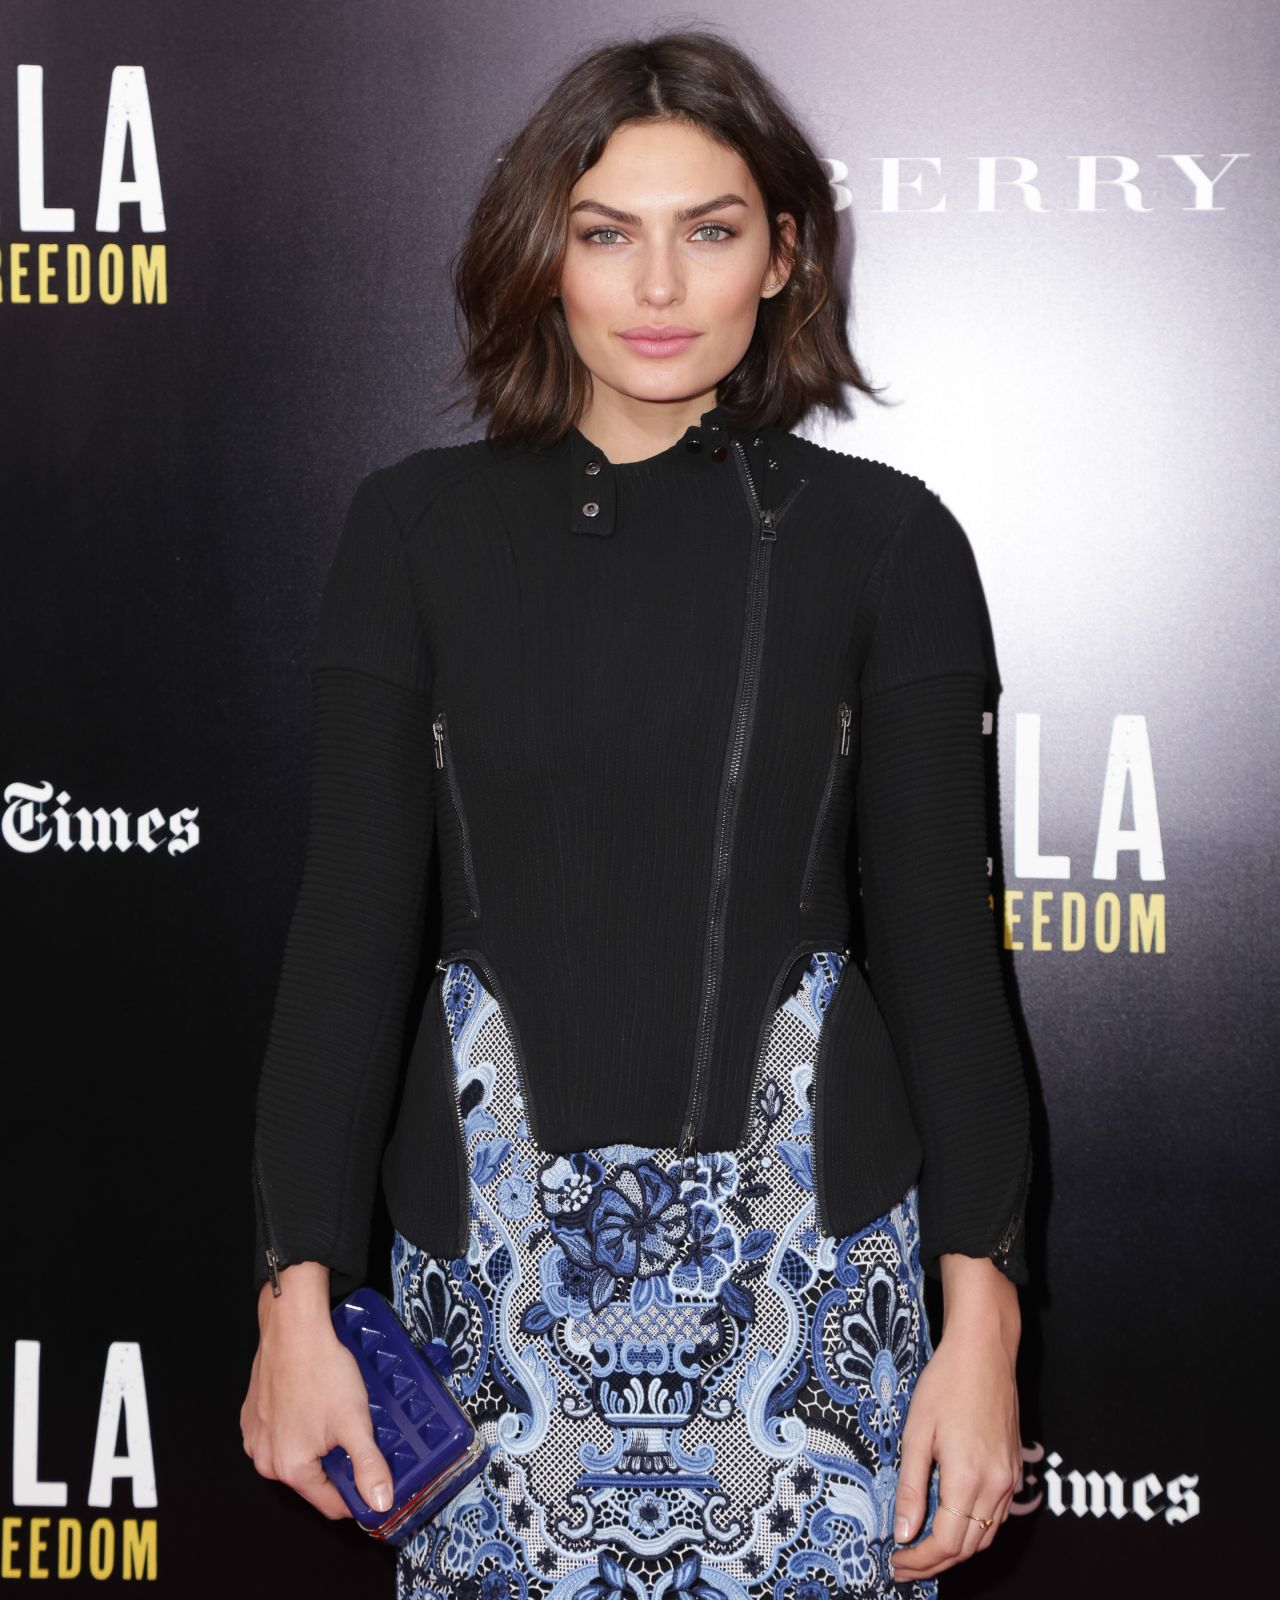 Alyssa Miller on Red Carpet – MANDELA: LONG WALK TO FREEDOM Movie Screening in New York City